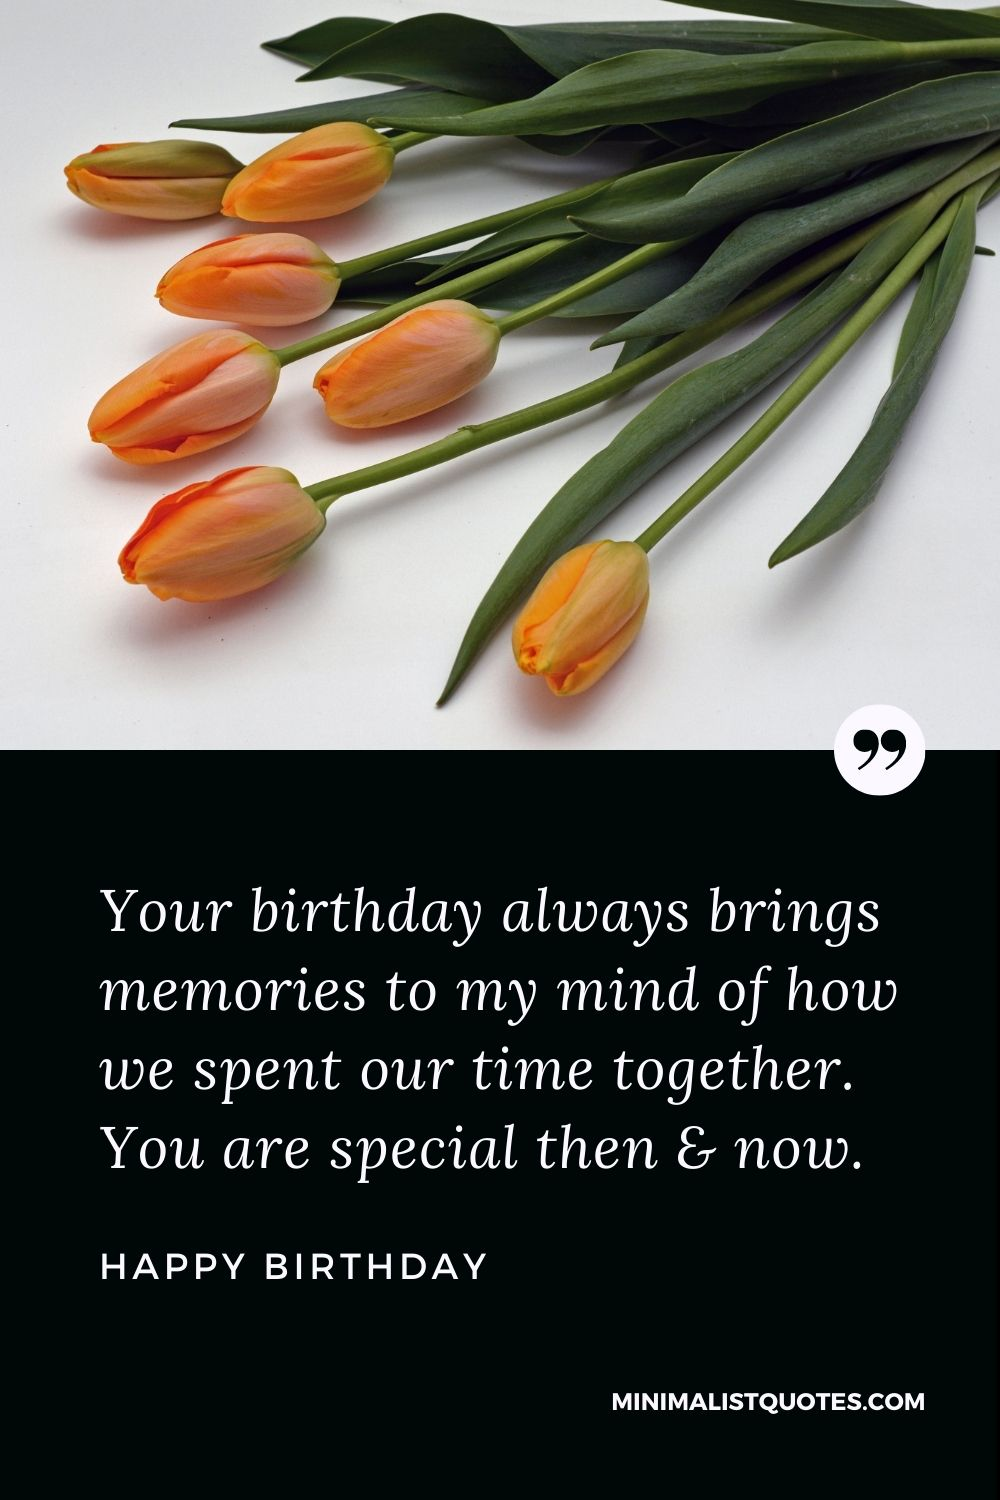 Happy Birthday Wishes - Your birthday always brings memories to my mind of how we spent our time together. You are special then & now.